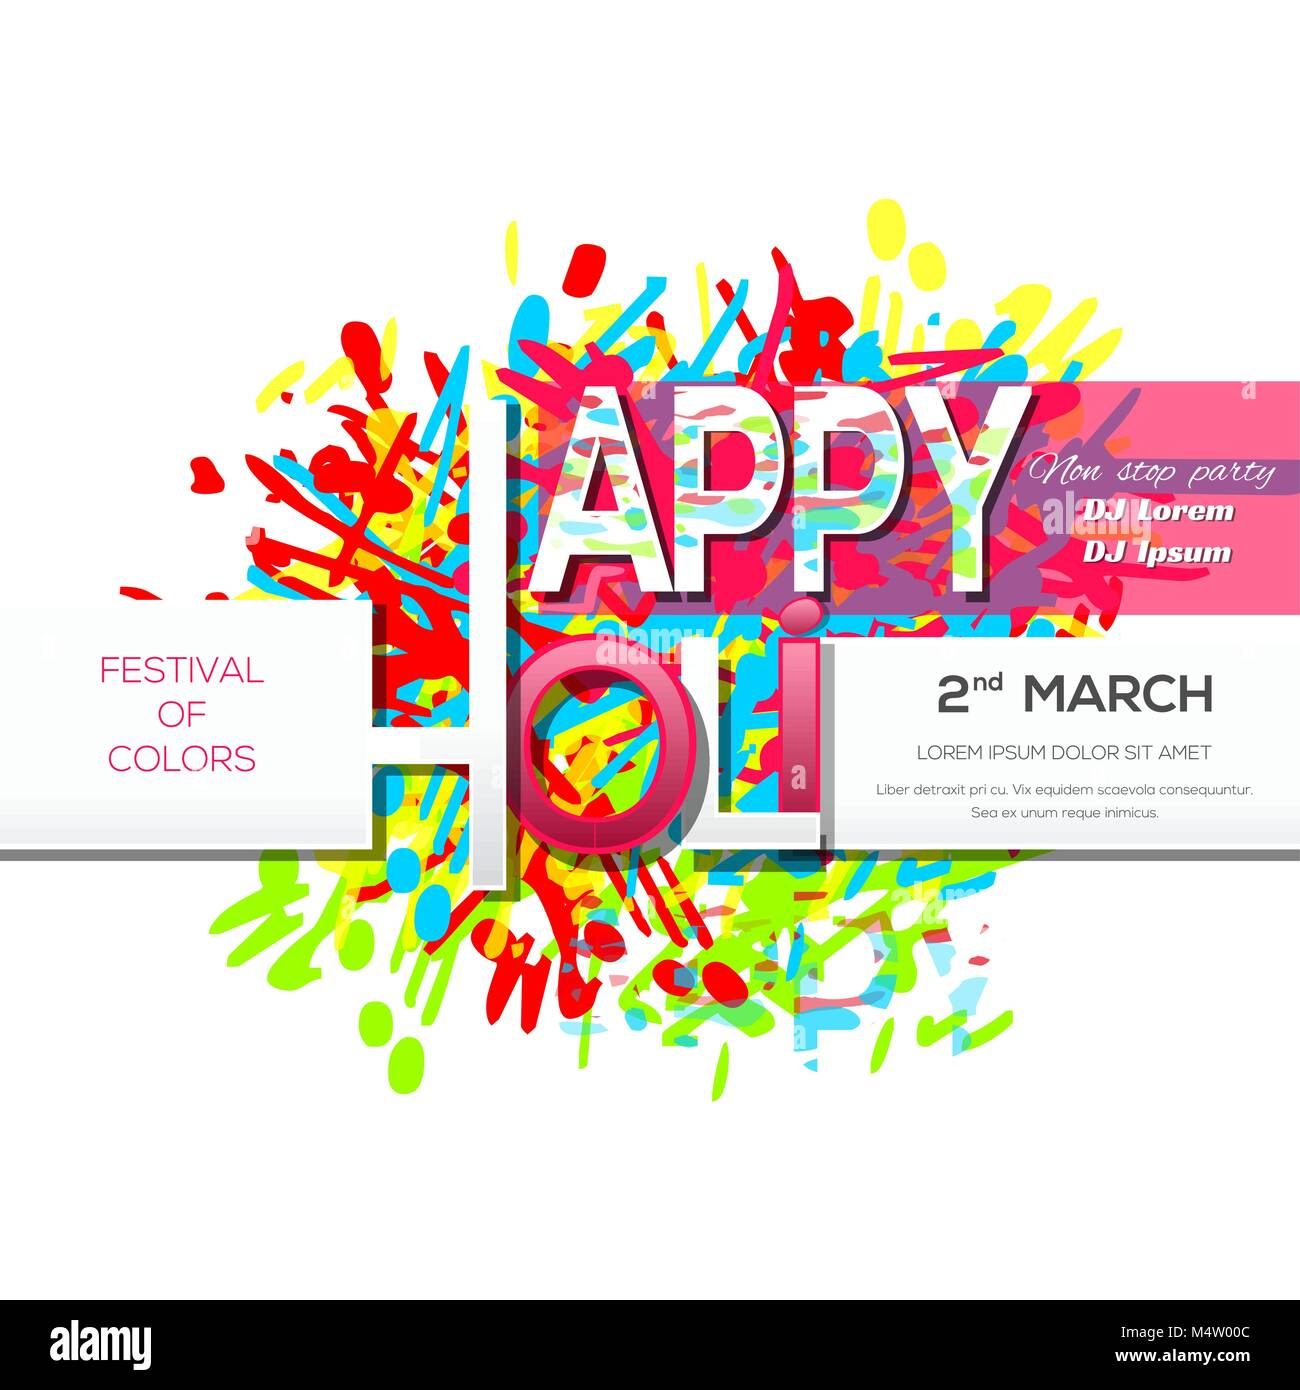 Holi festival cut out stock images pictures alamy holi 2018 2nd march invitation poster stock image stopboris Image collections